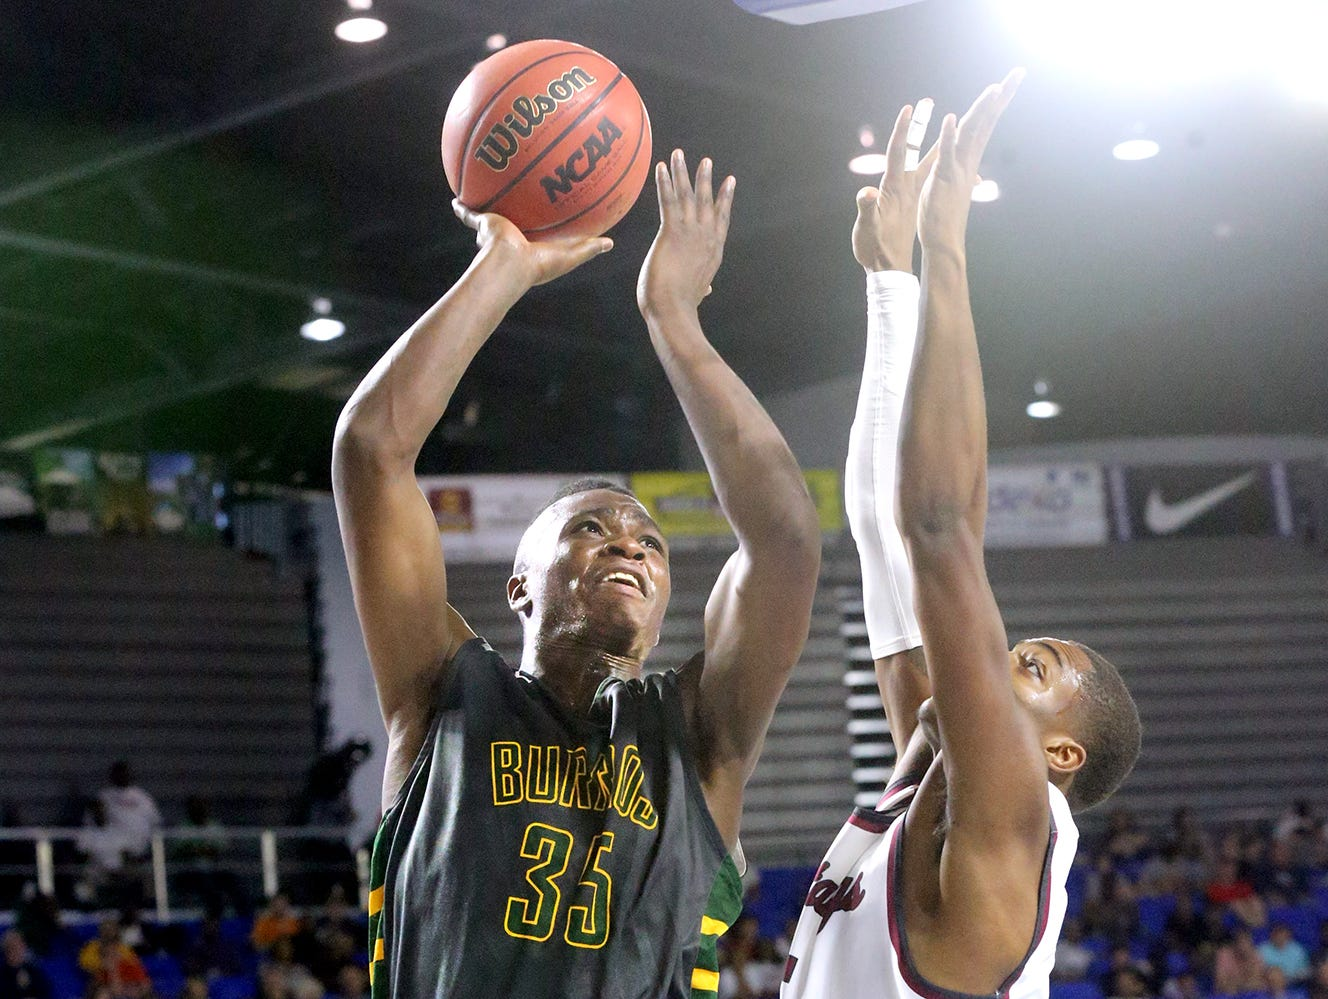 Hillsboro's Thomas Smith (35) goes up for a shot as Memphis East's Teddrick McGhee (5) guards him during the State Tournament Quarterfinal game , on Wednesday at MTSU.